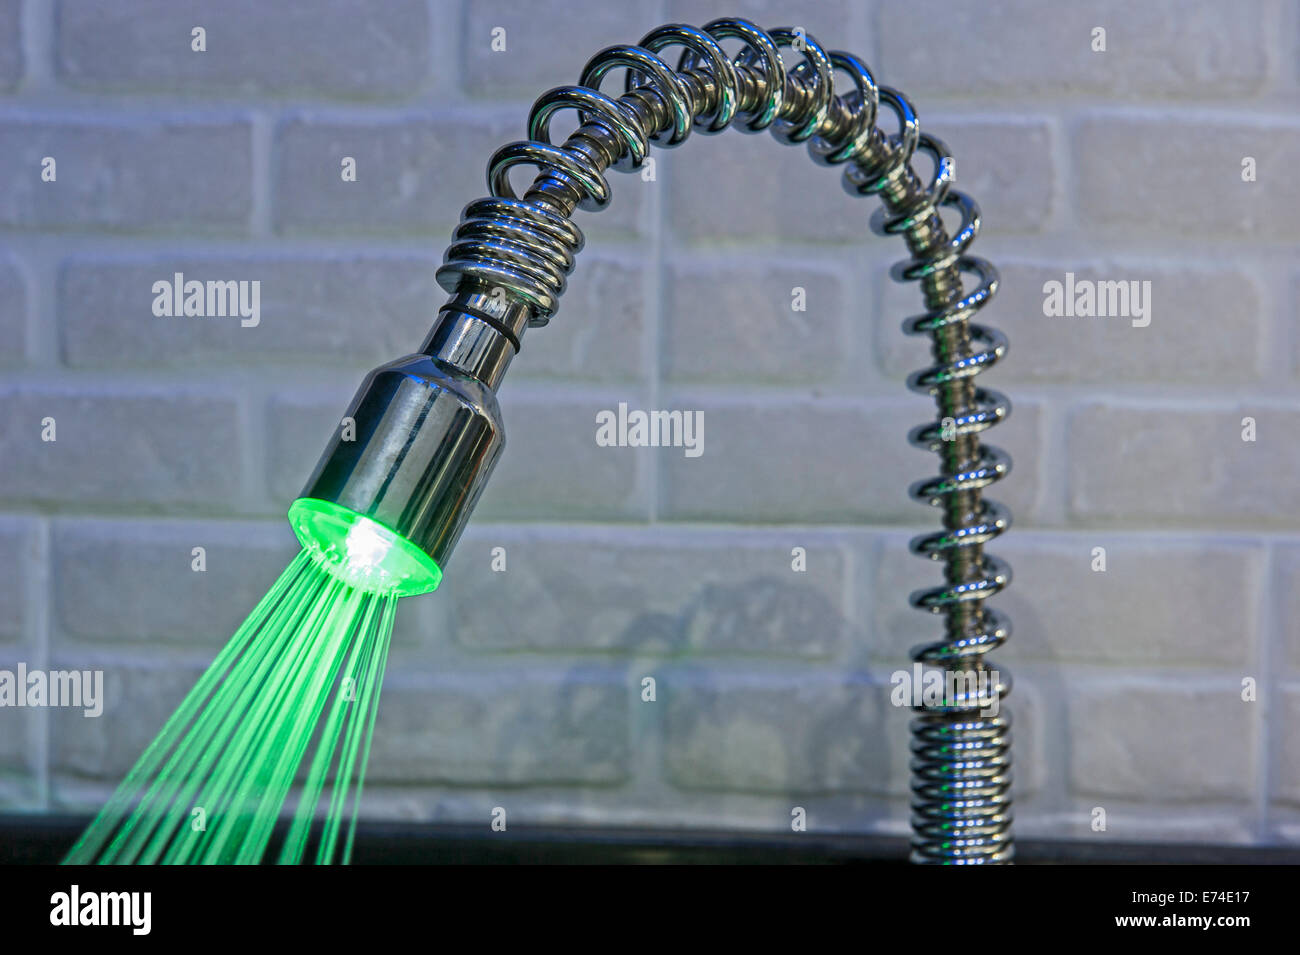 Ornate illuminated luxury tap faucet with green light and water ...